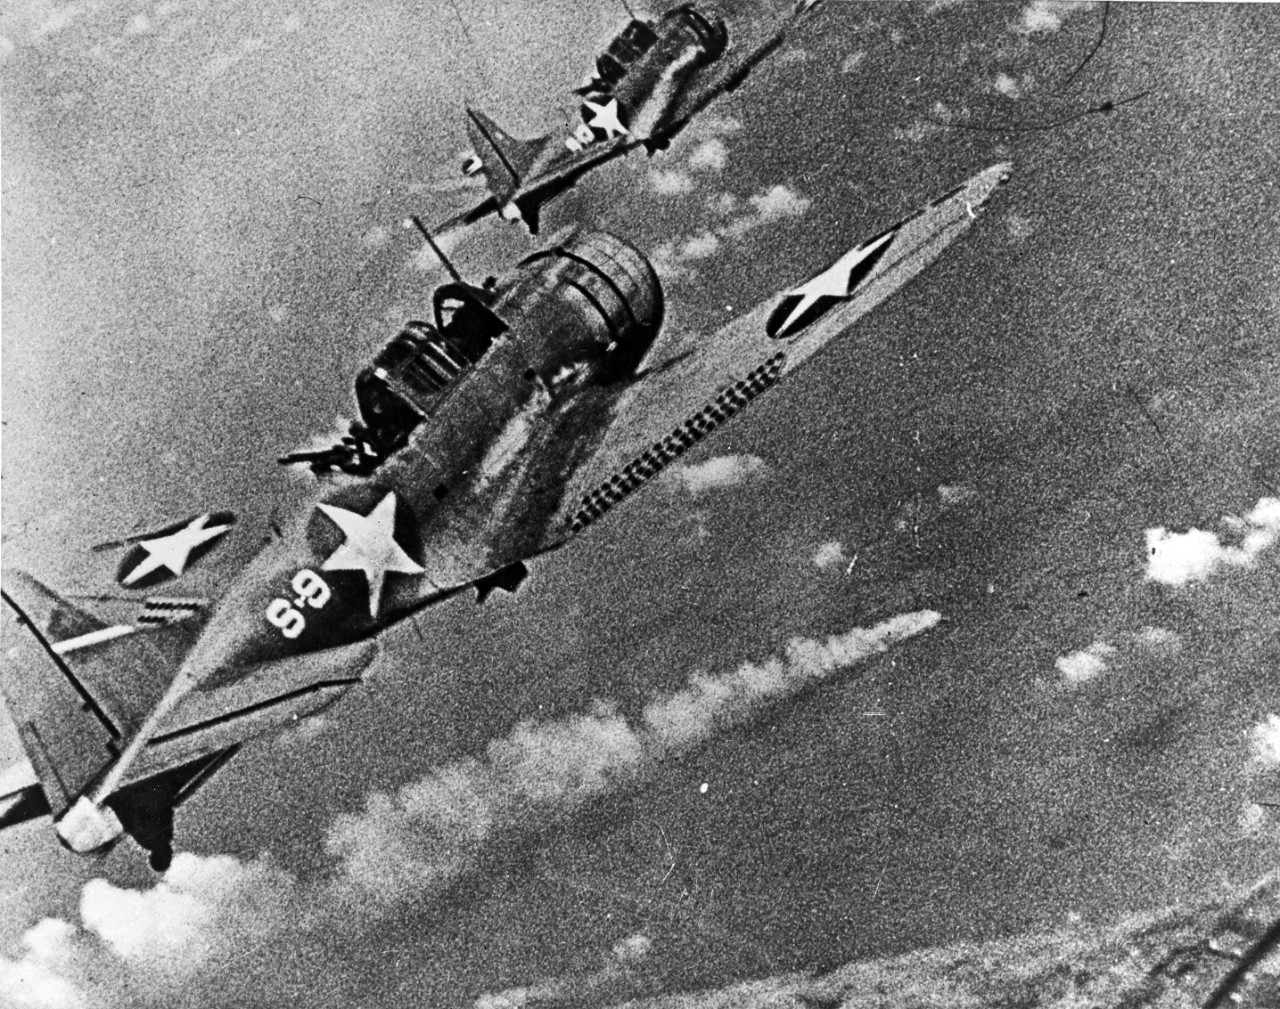 Photo #: 80-G-17054  Battle of Midway, June 1942